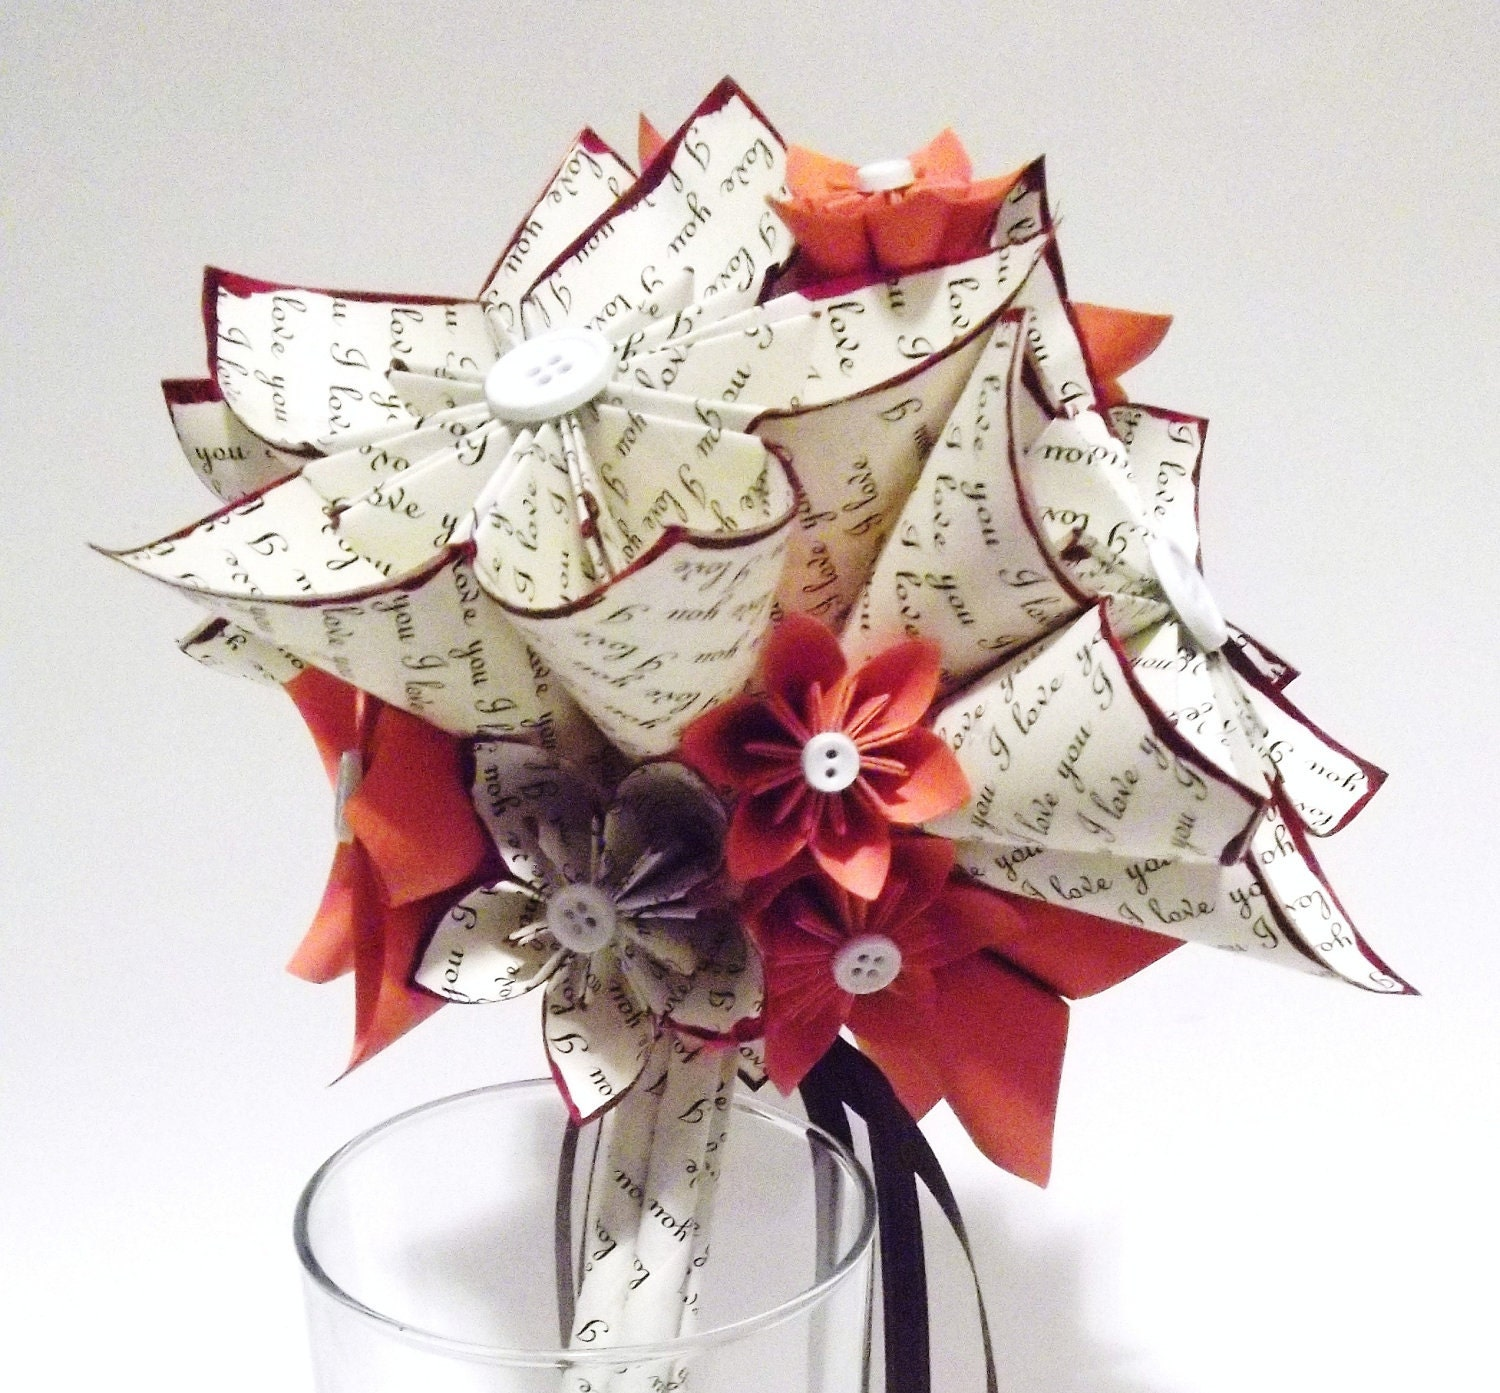 I Love You Paper Flower Wedding Bouquet 8 Inch 15 Flowers